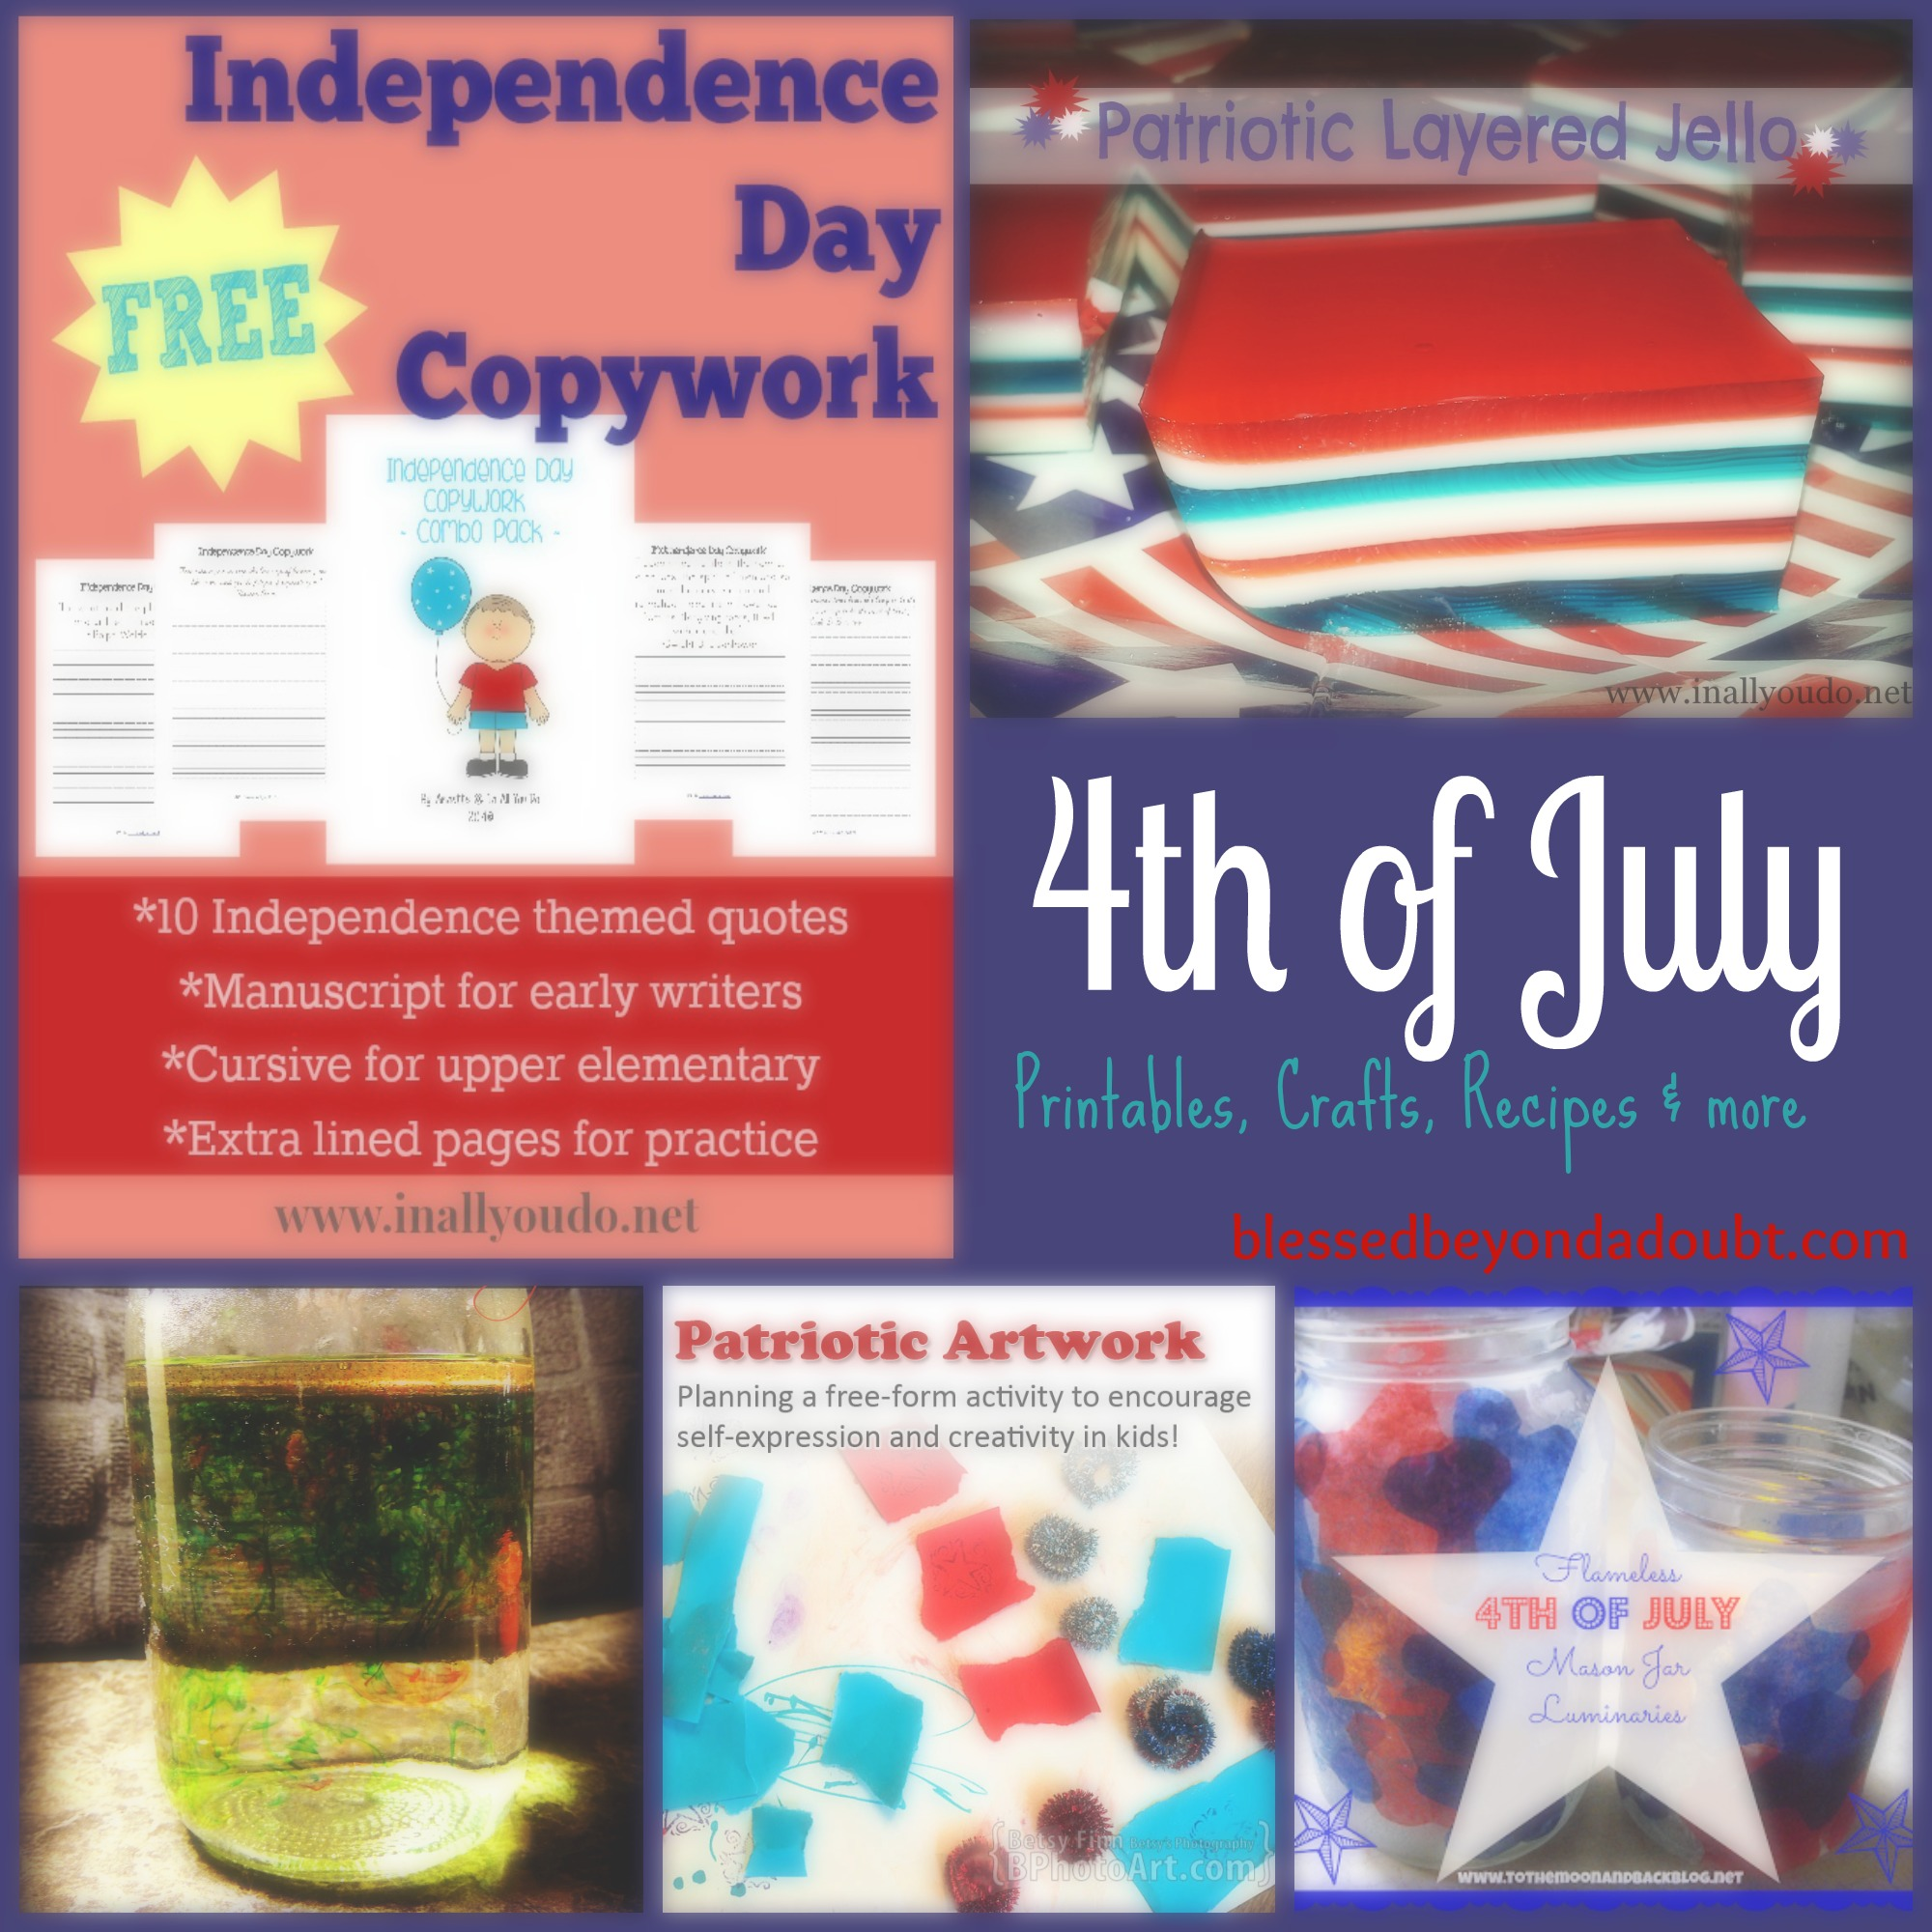 4th of July Printables, Crafts, Recipes & More!